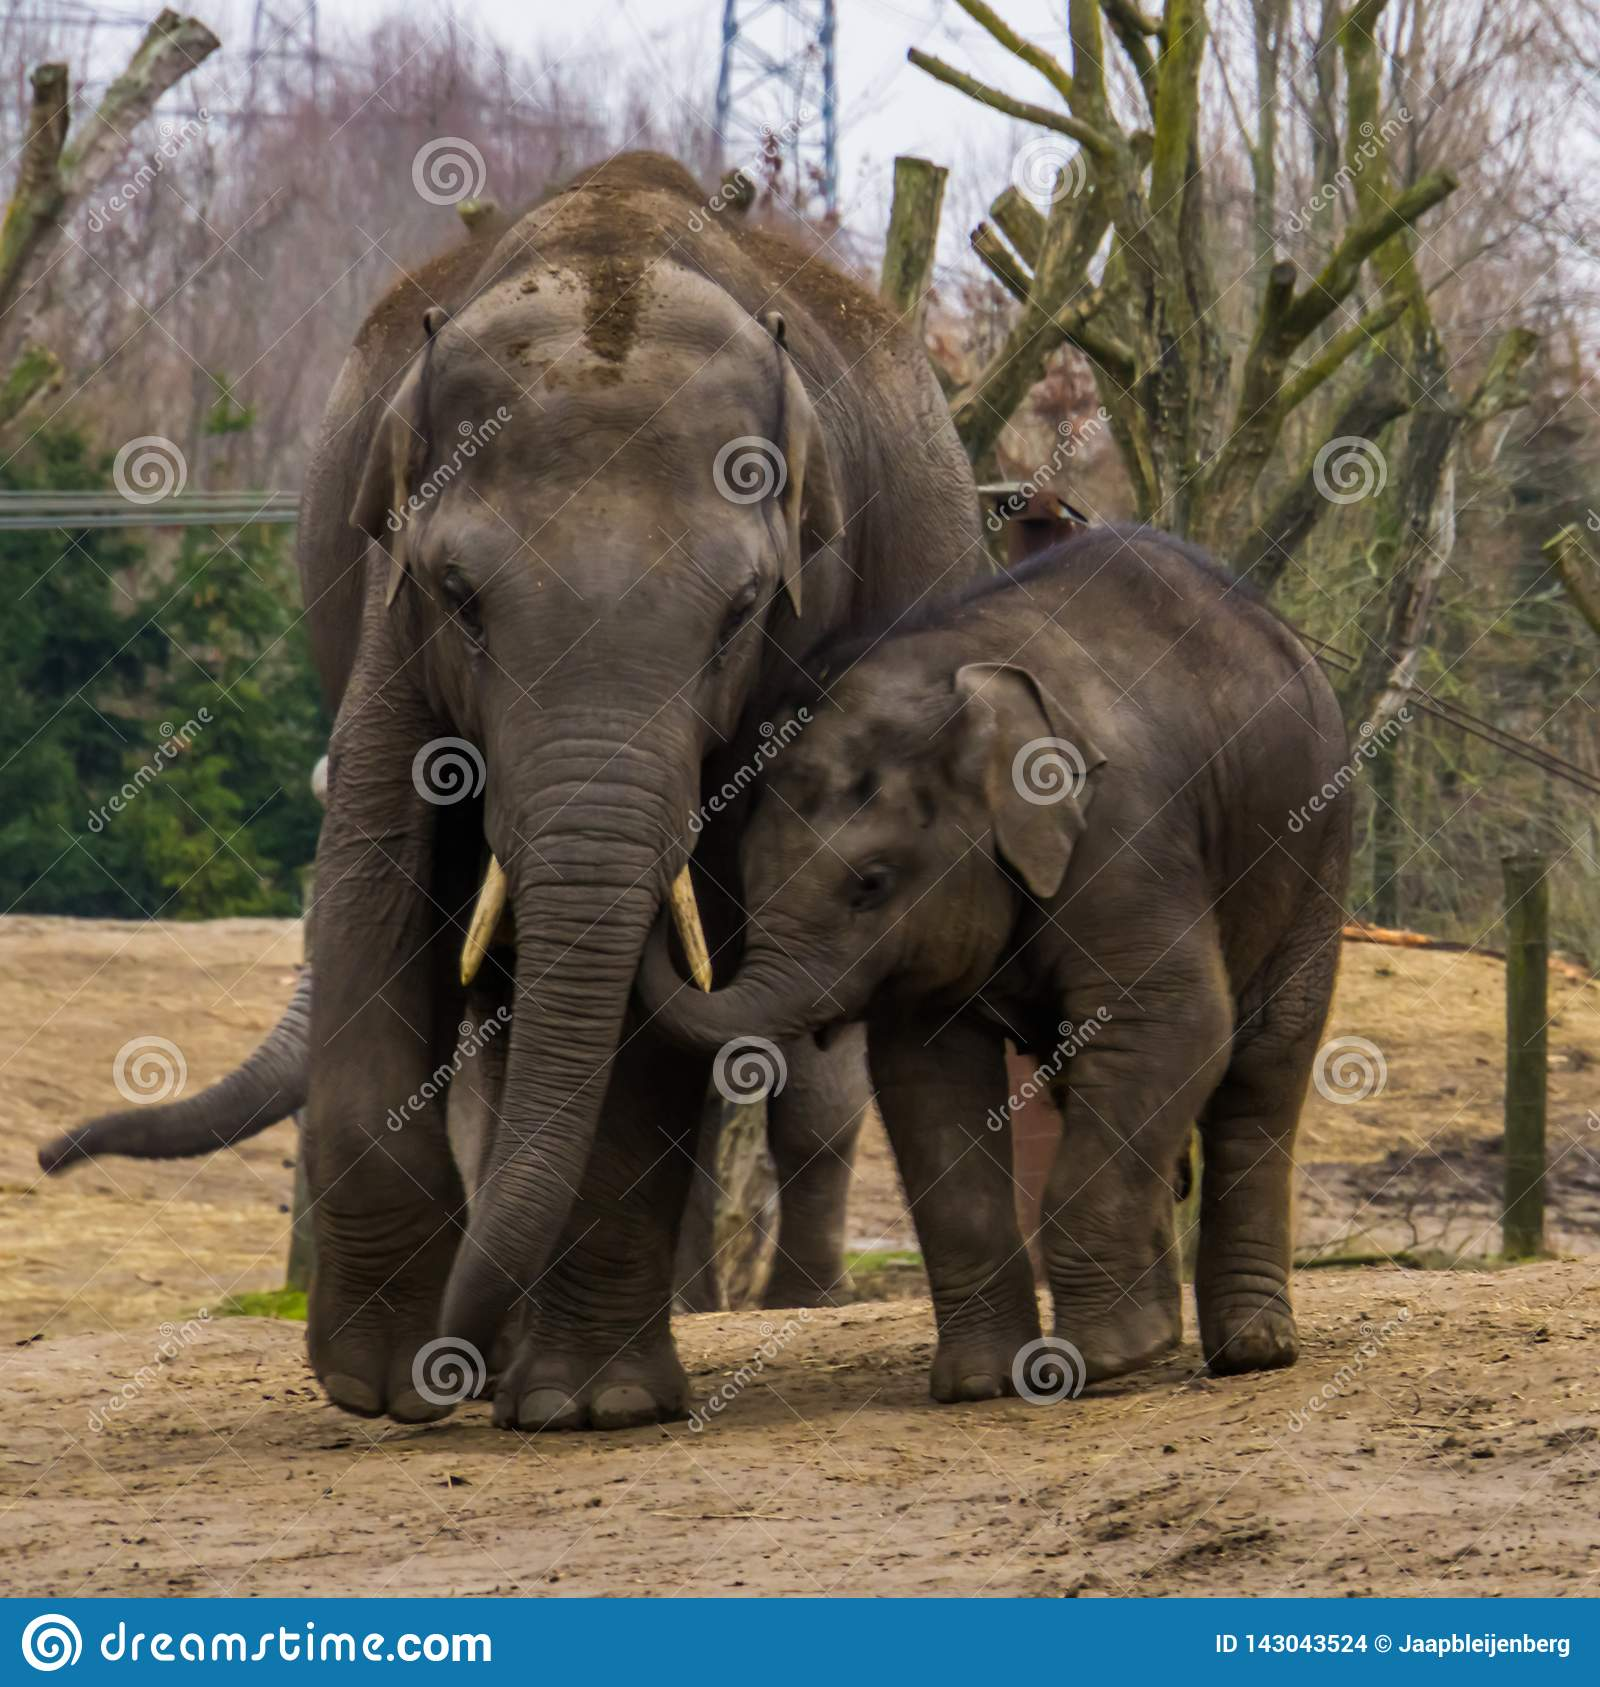 Young Asian elephant walking with its dad, very cute family portrait, Endangered animals from Asia